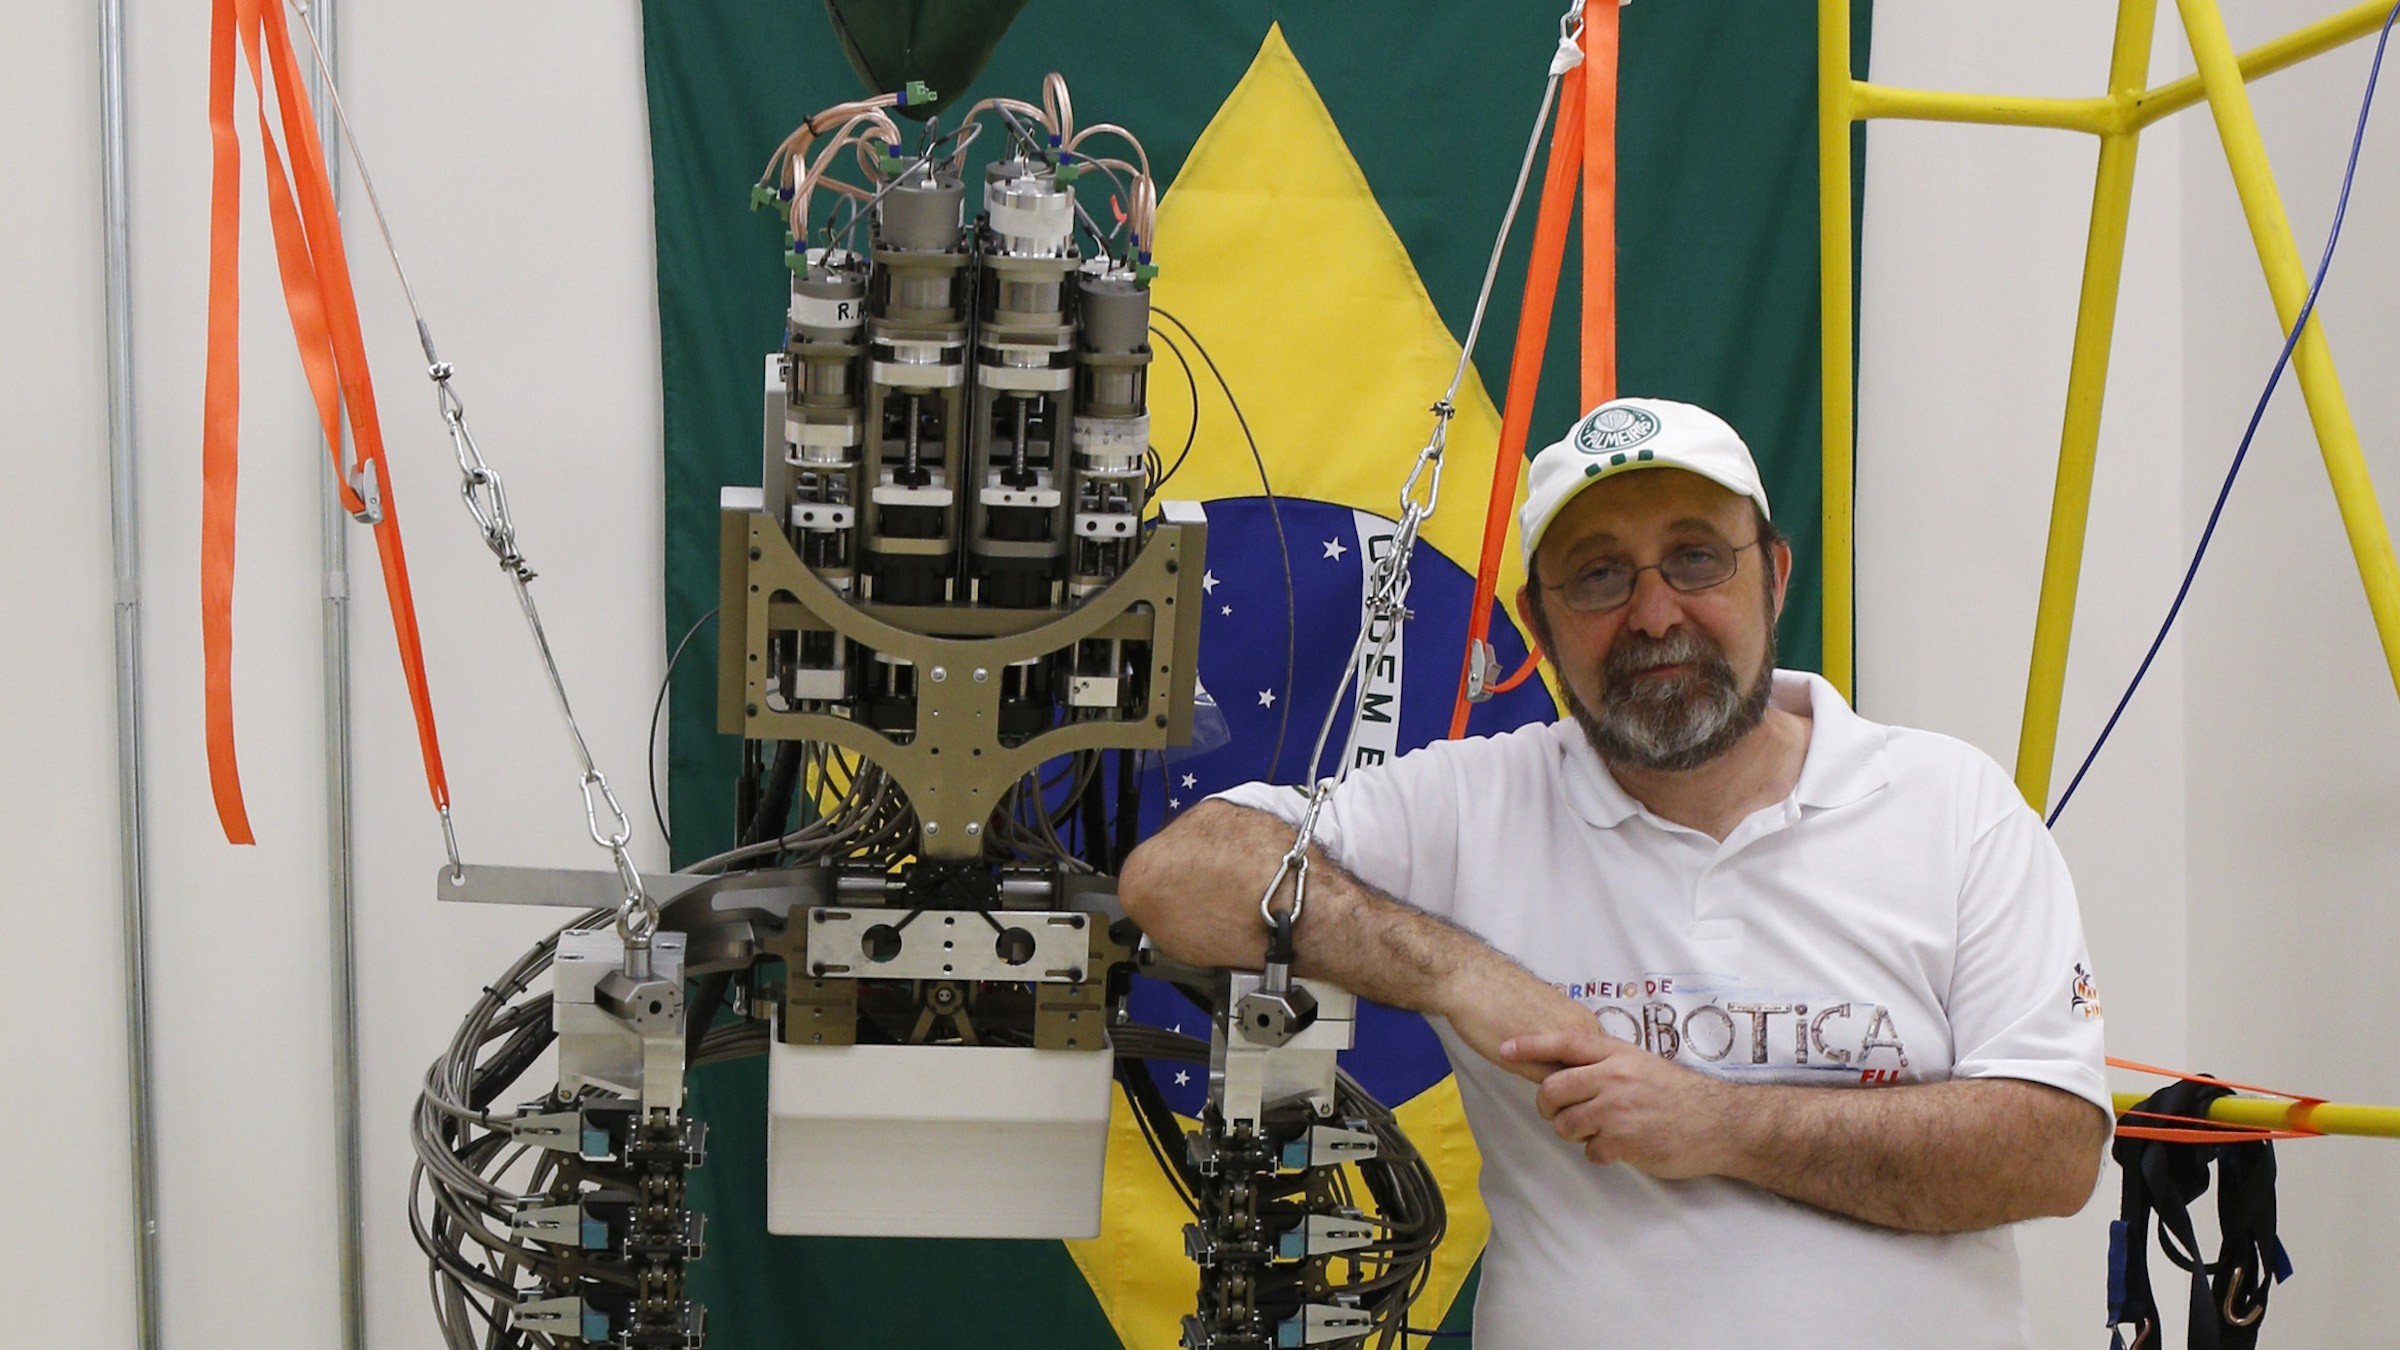 """Brazilian neuroscientist Miguel Nicolelis poses with a robotic exoskeleton in Sao Paulo May 21, 2014. Nicolelis is leading """"The Walk Again Project"""", where the mechanical exoskeleton is able to support a paralyzed person's lower body and responds to wireless commands that come from electrodes placed on the person's scalp or within the brain. The robotic exoskeleton could allow a paraplegic to deliver the first kick of the World Cup in Brazil next month, as part of a project to showcase technology aimed at overcoming paralysis. Picture taken May 21, 2014. REUTERS/Paulo Whitaker (BRAZIL - Tags: SPORT SOCCER WORLD CUP SCIENCE TECHNOLOGY)"""